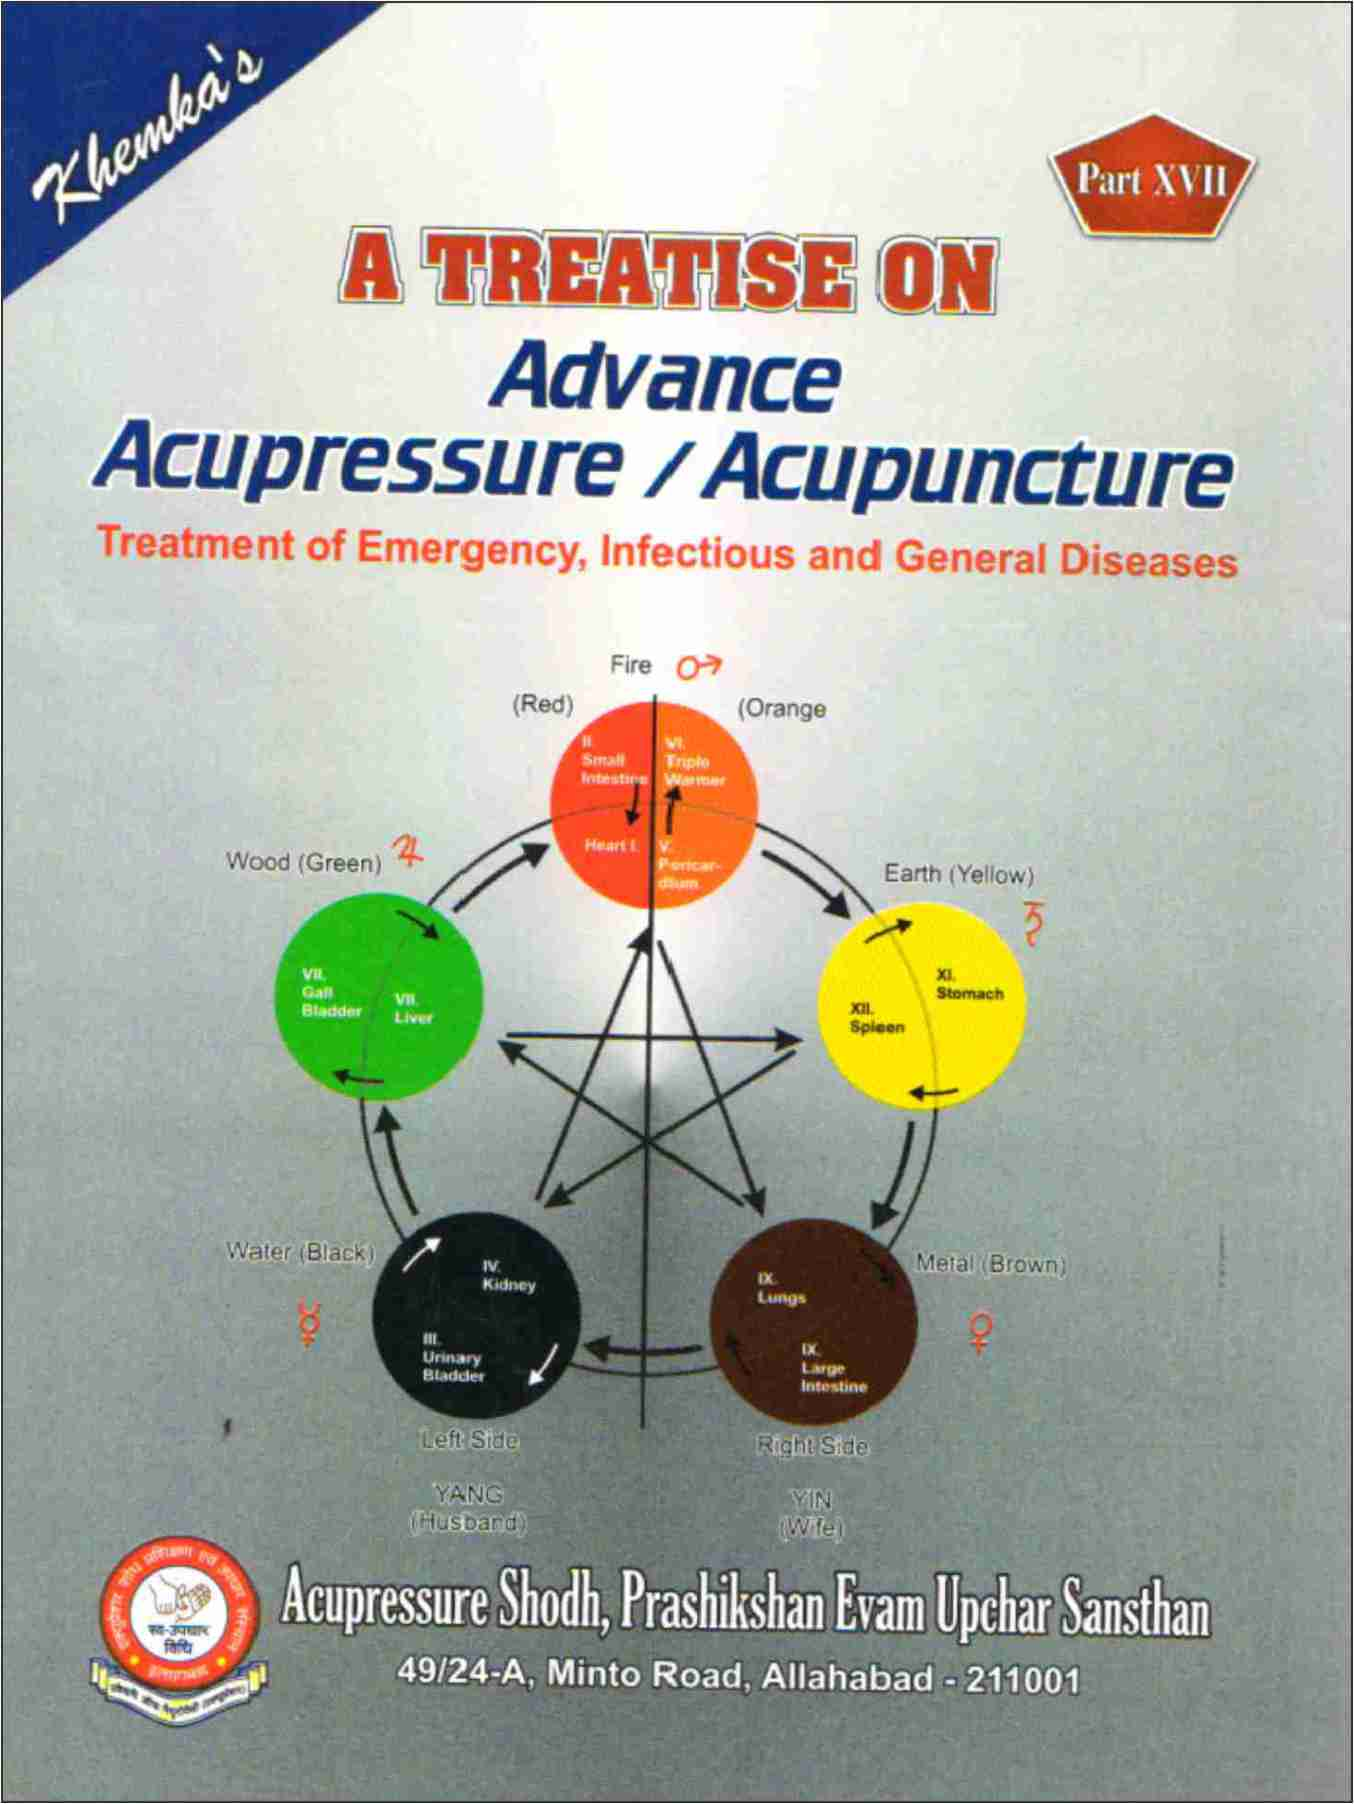 Advance Acupressure/Acupuncture-17